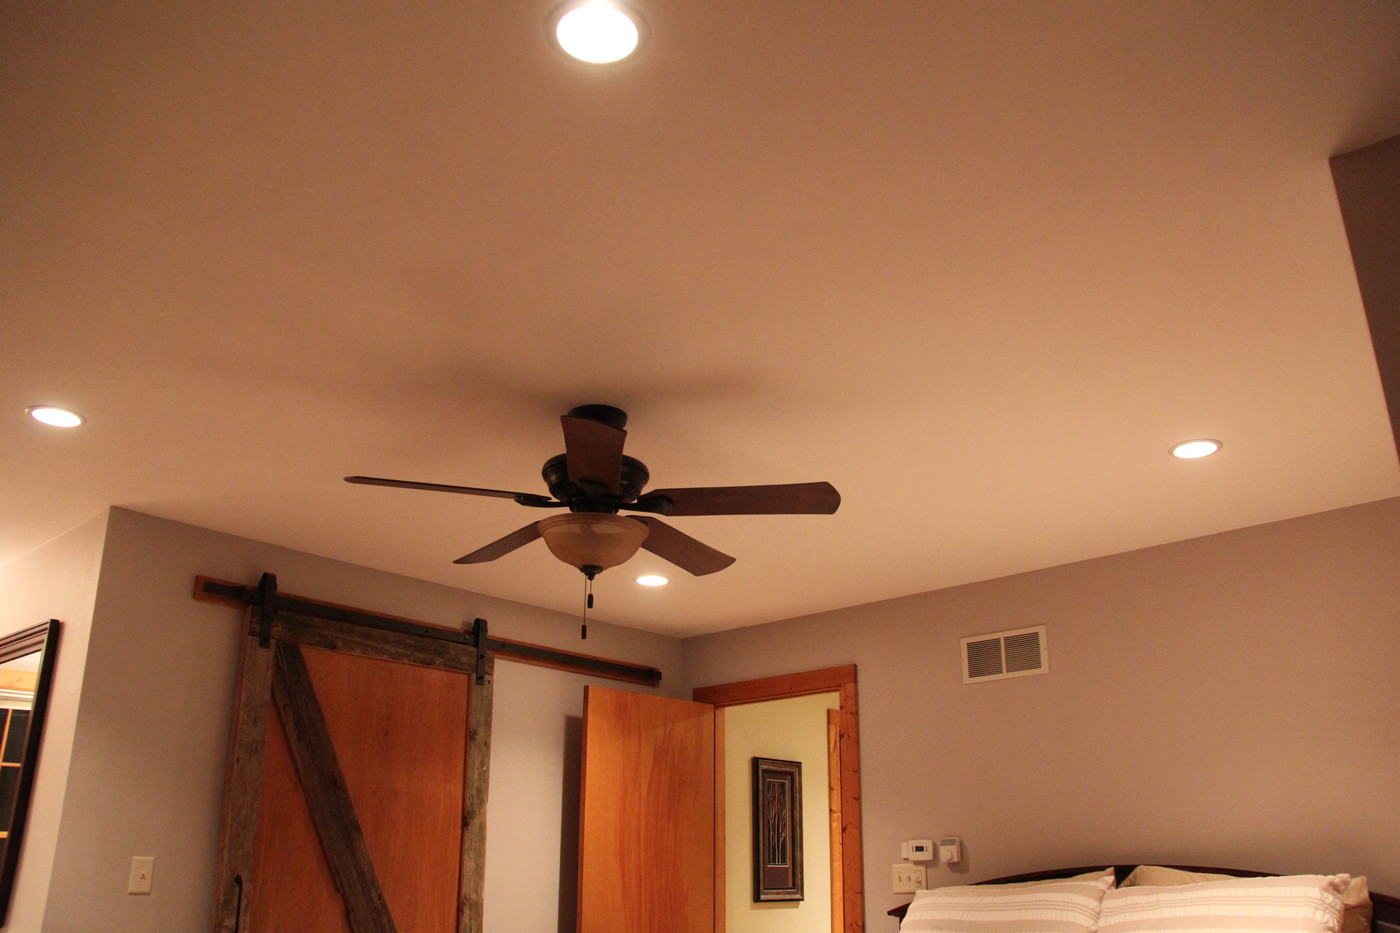 Fan Replace, Install New Recessed Lights In Bedroom